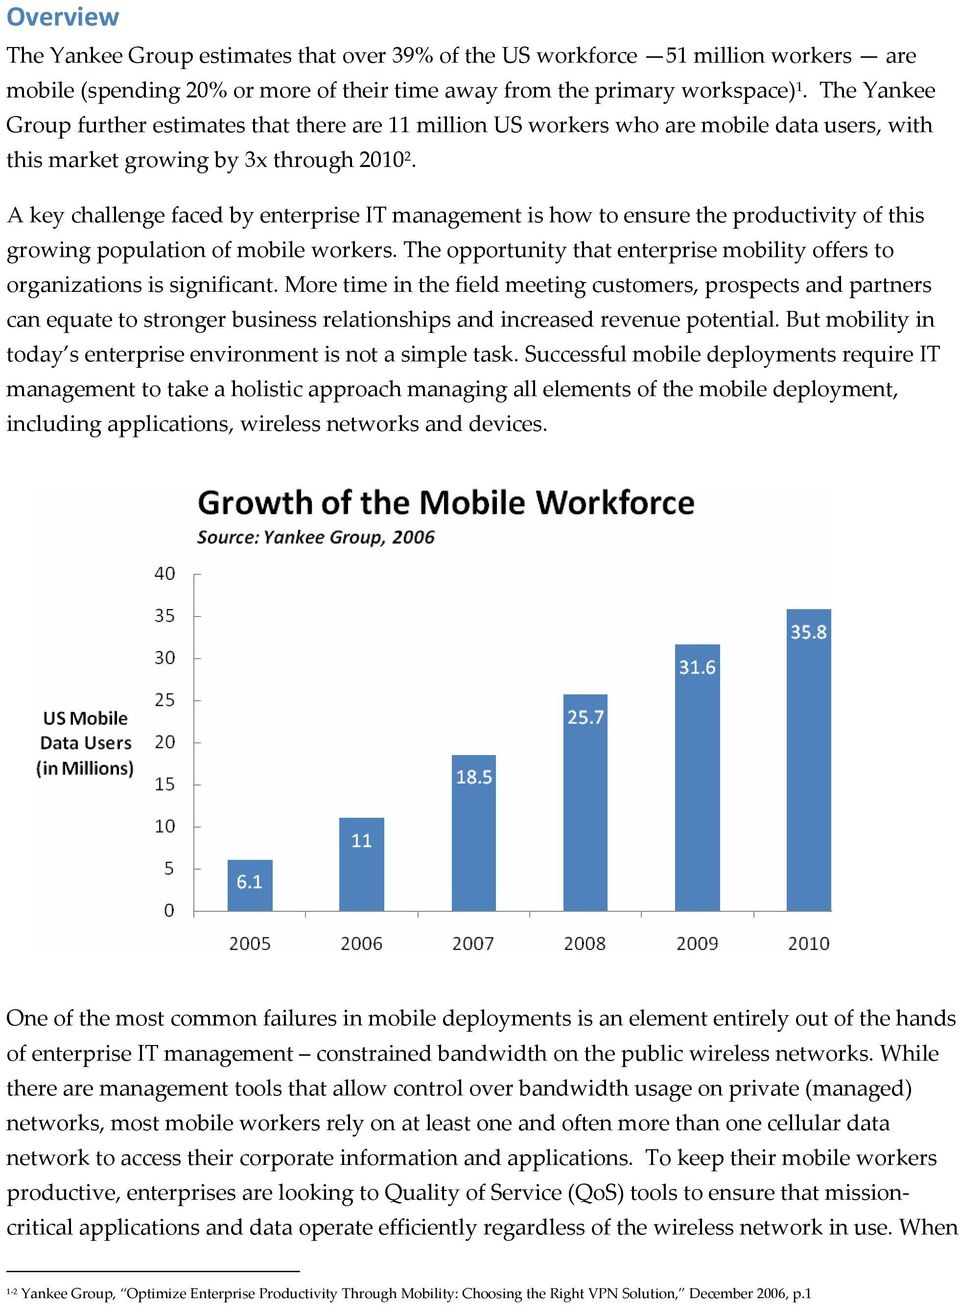 A key challenge faced by enterprise IT management is how to ensure the productivity of this growing population of mobile workers.